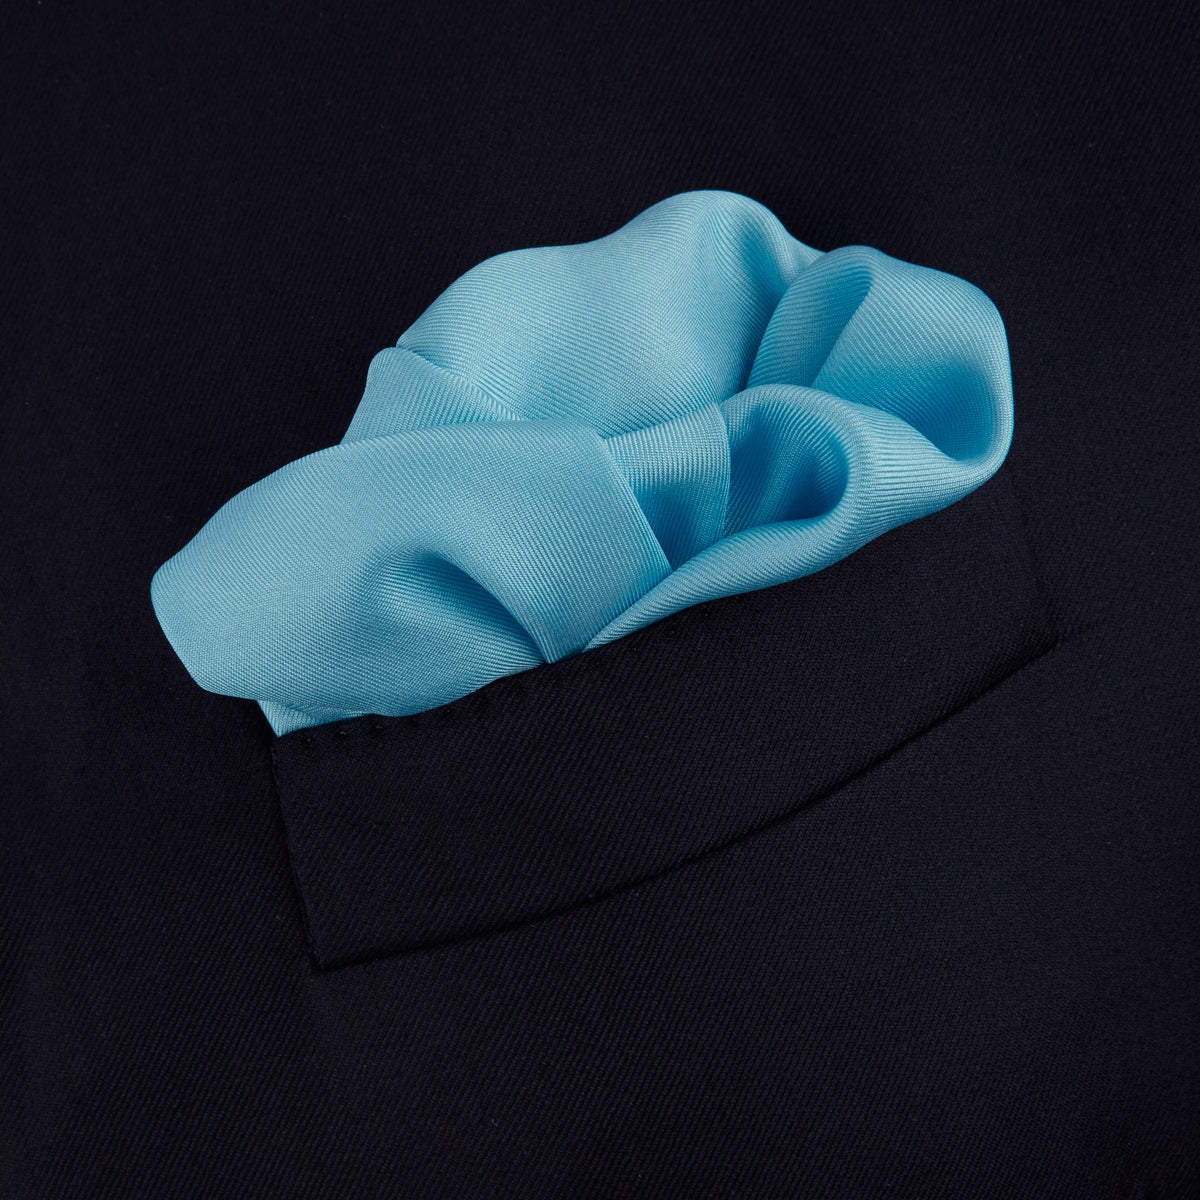 Plain Aquamarine Silk Pocket Square with White piping